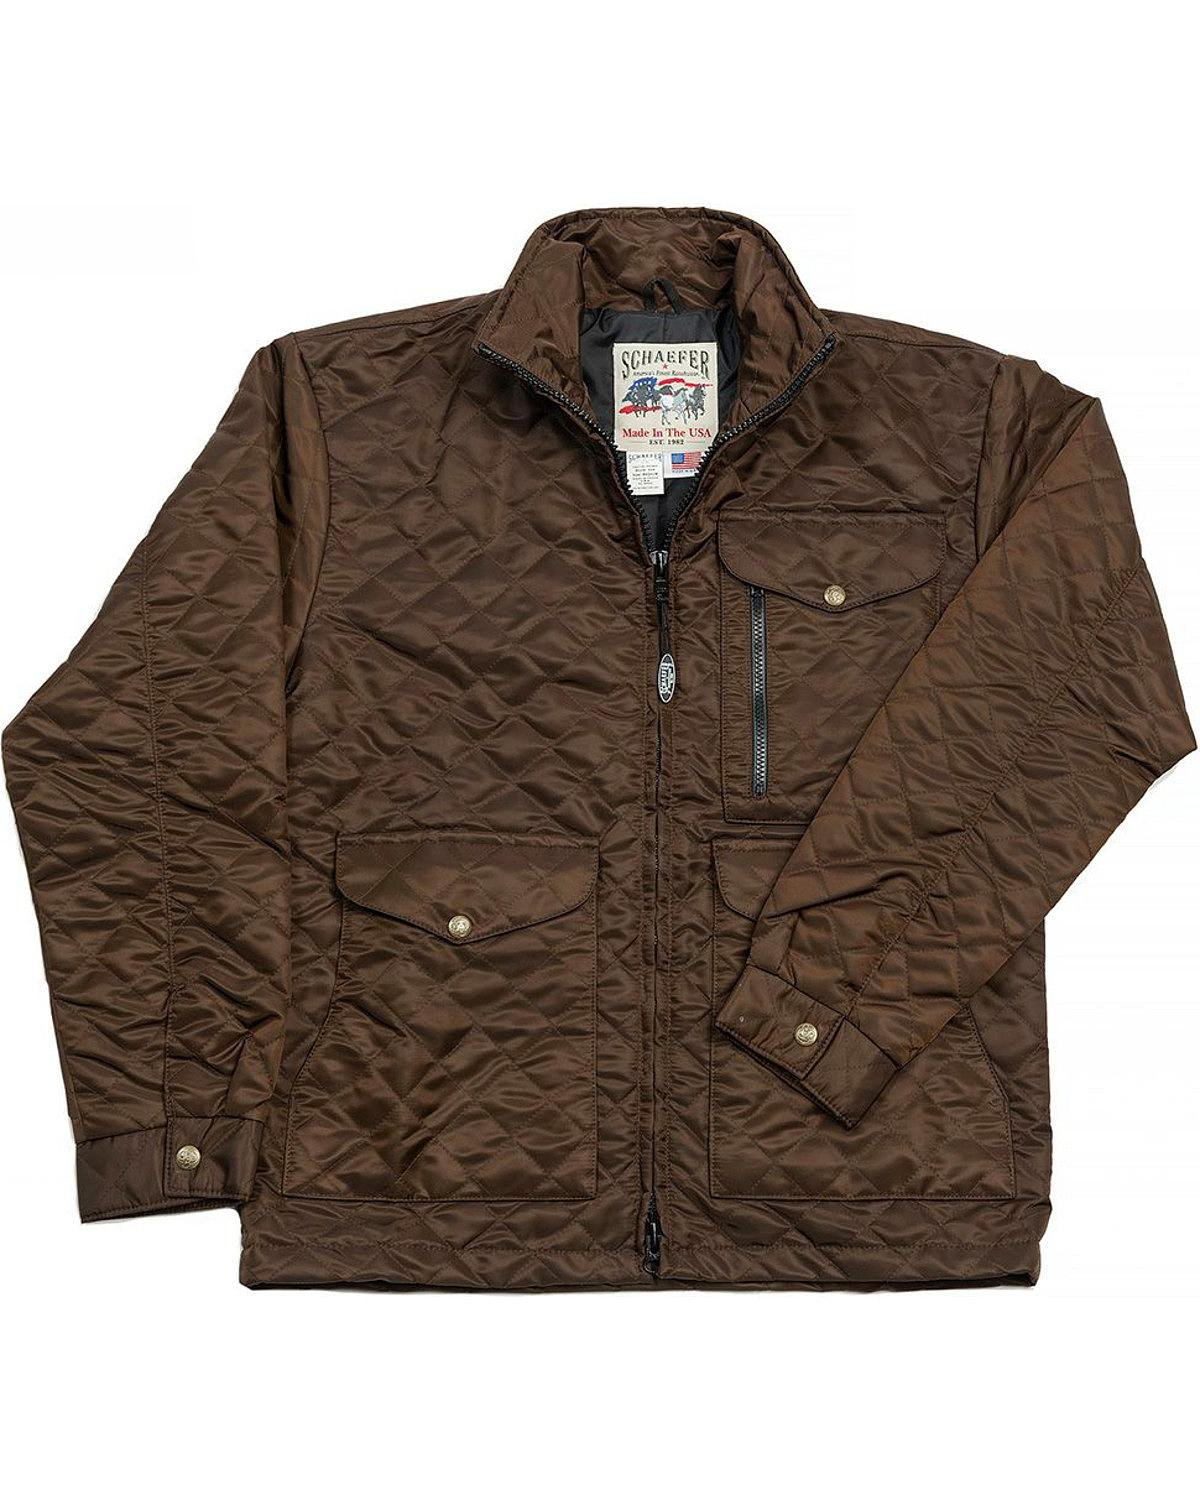 Schaefer Outfitter Men's Chocolate Canyon Cruiser 2XL Chocolate XX-Large